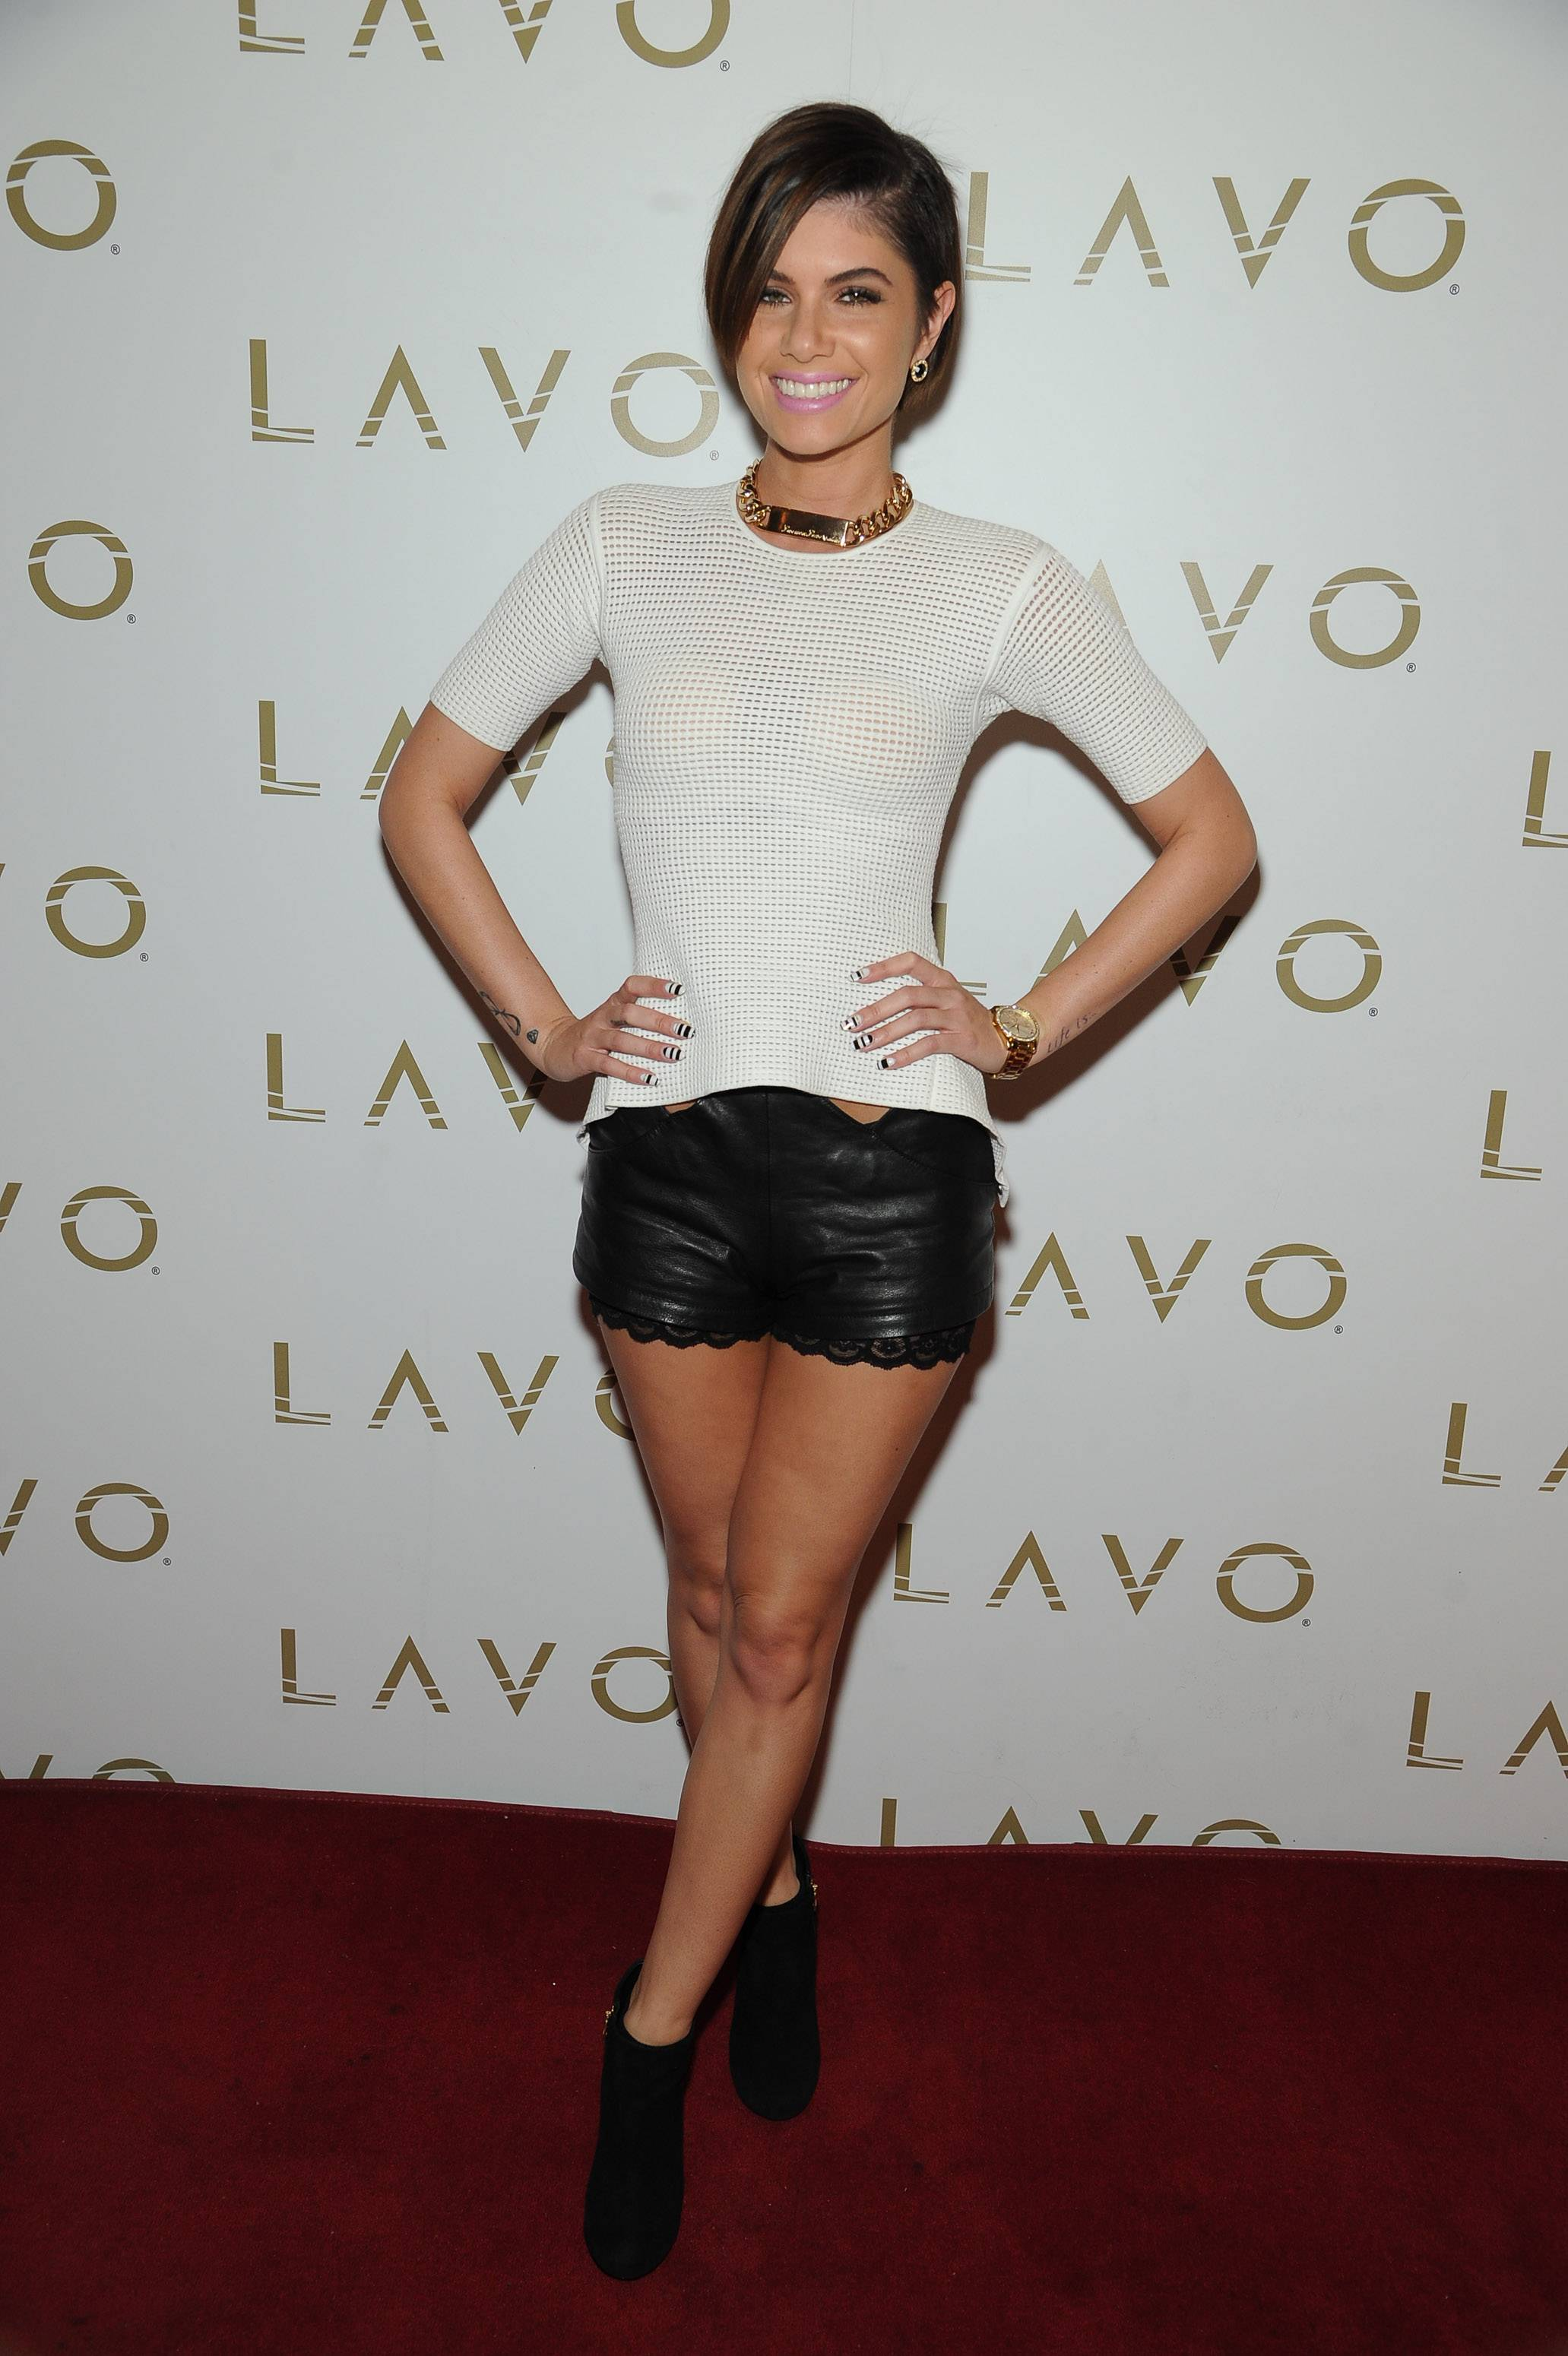 Leah Labelle at LAVO